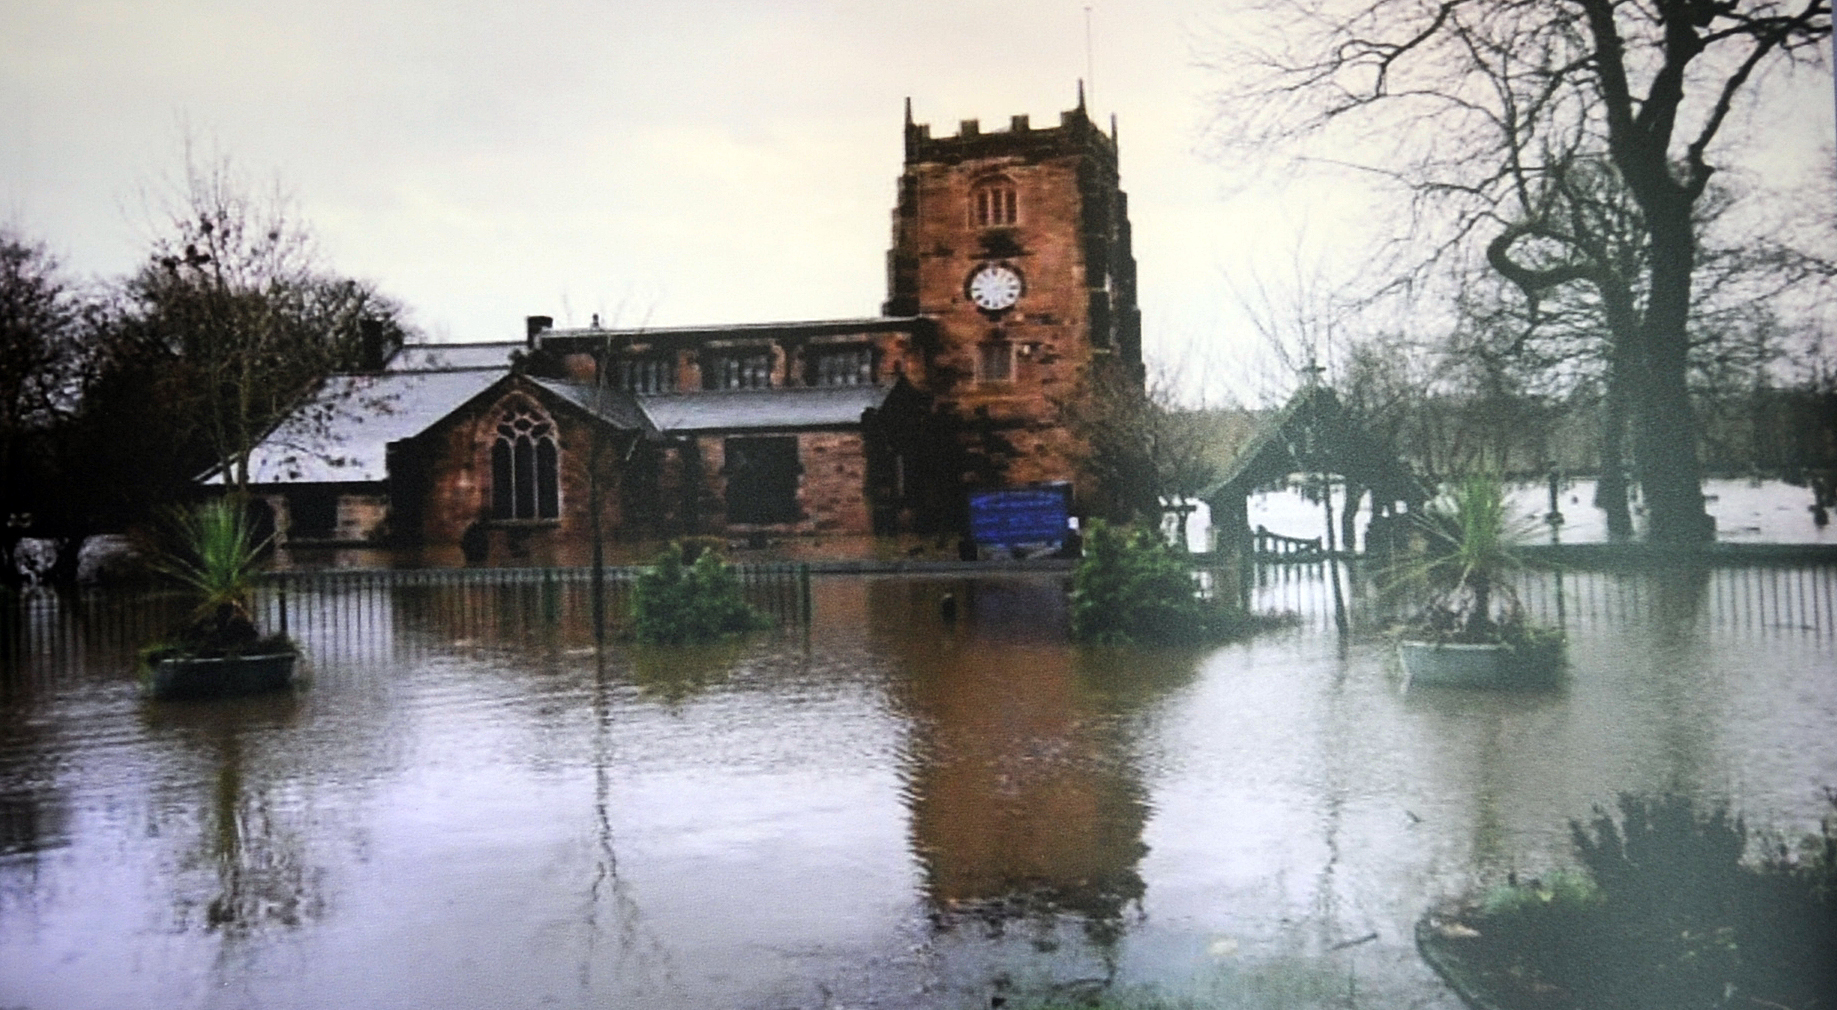 FLOODING: Radcliffe Parish Church flooded during the Boxing Day Floods 2015. Picture: Steve Holt